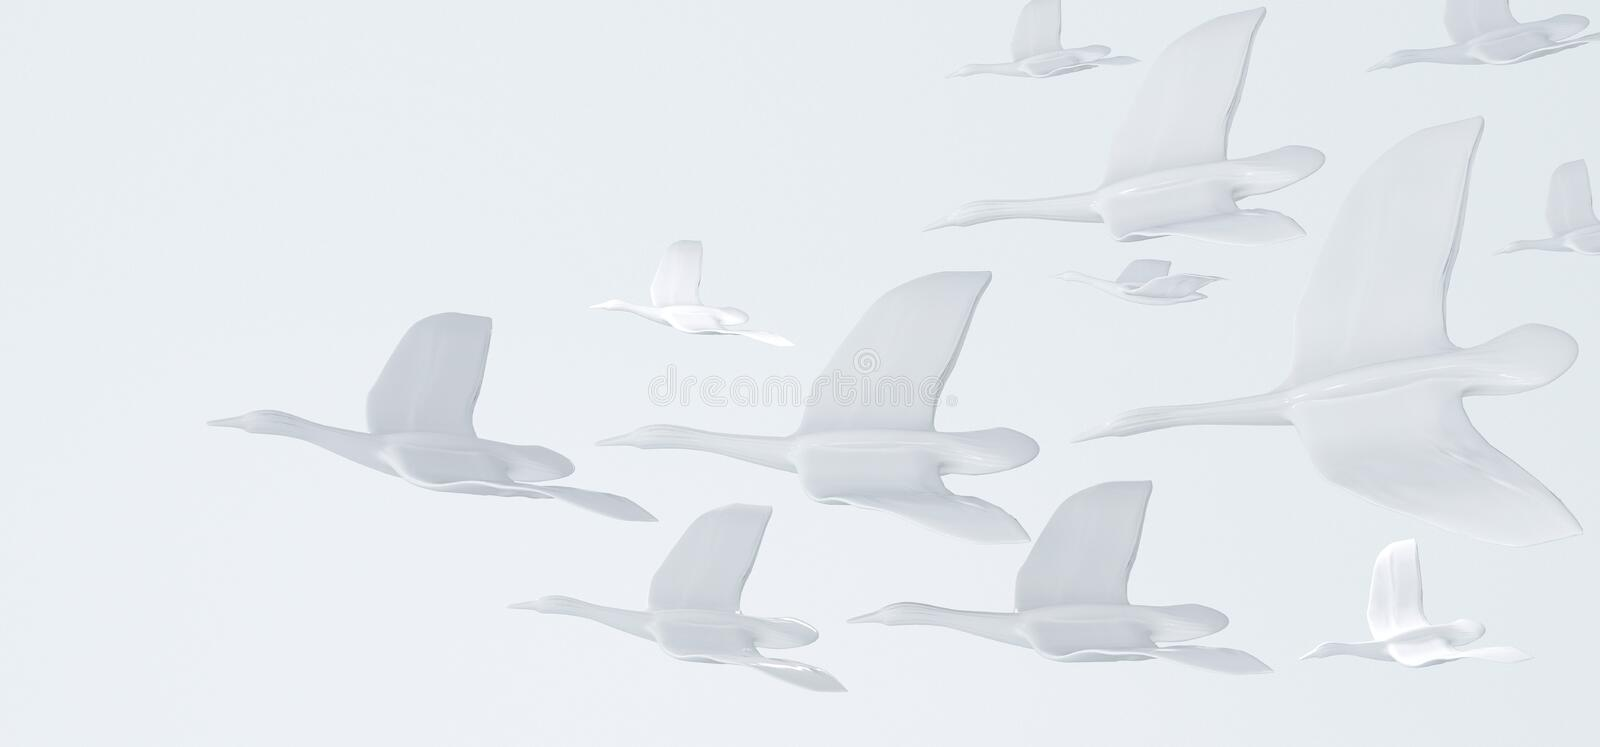 Abstract white background with white birds. The concept of freedom, purity and peace. vector illustration